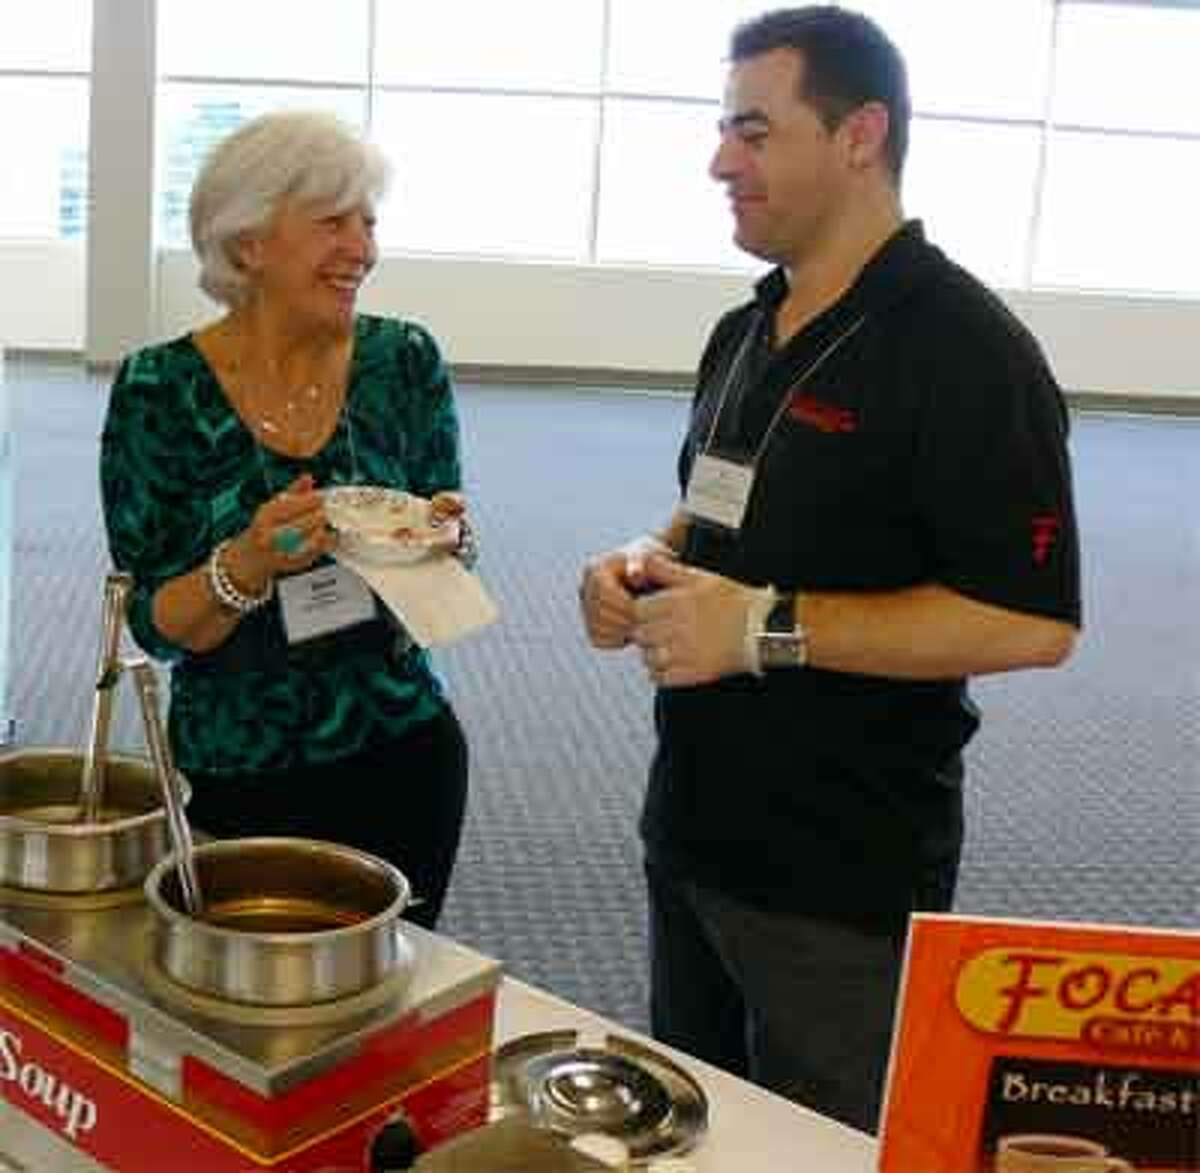 Debi Molfese of BeautyCounter, a home-based business in Seymour, tries the soup from Focaccia's Cafe in Shelton while chatting with Focaccia's co-owner Ben Mujollari during the business expo. Focaccia's is in the Center at Split Rock shopping center on Bridgeport Avenue.